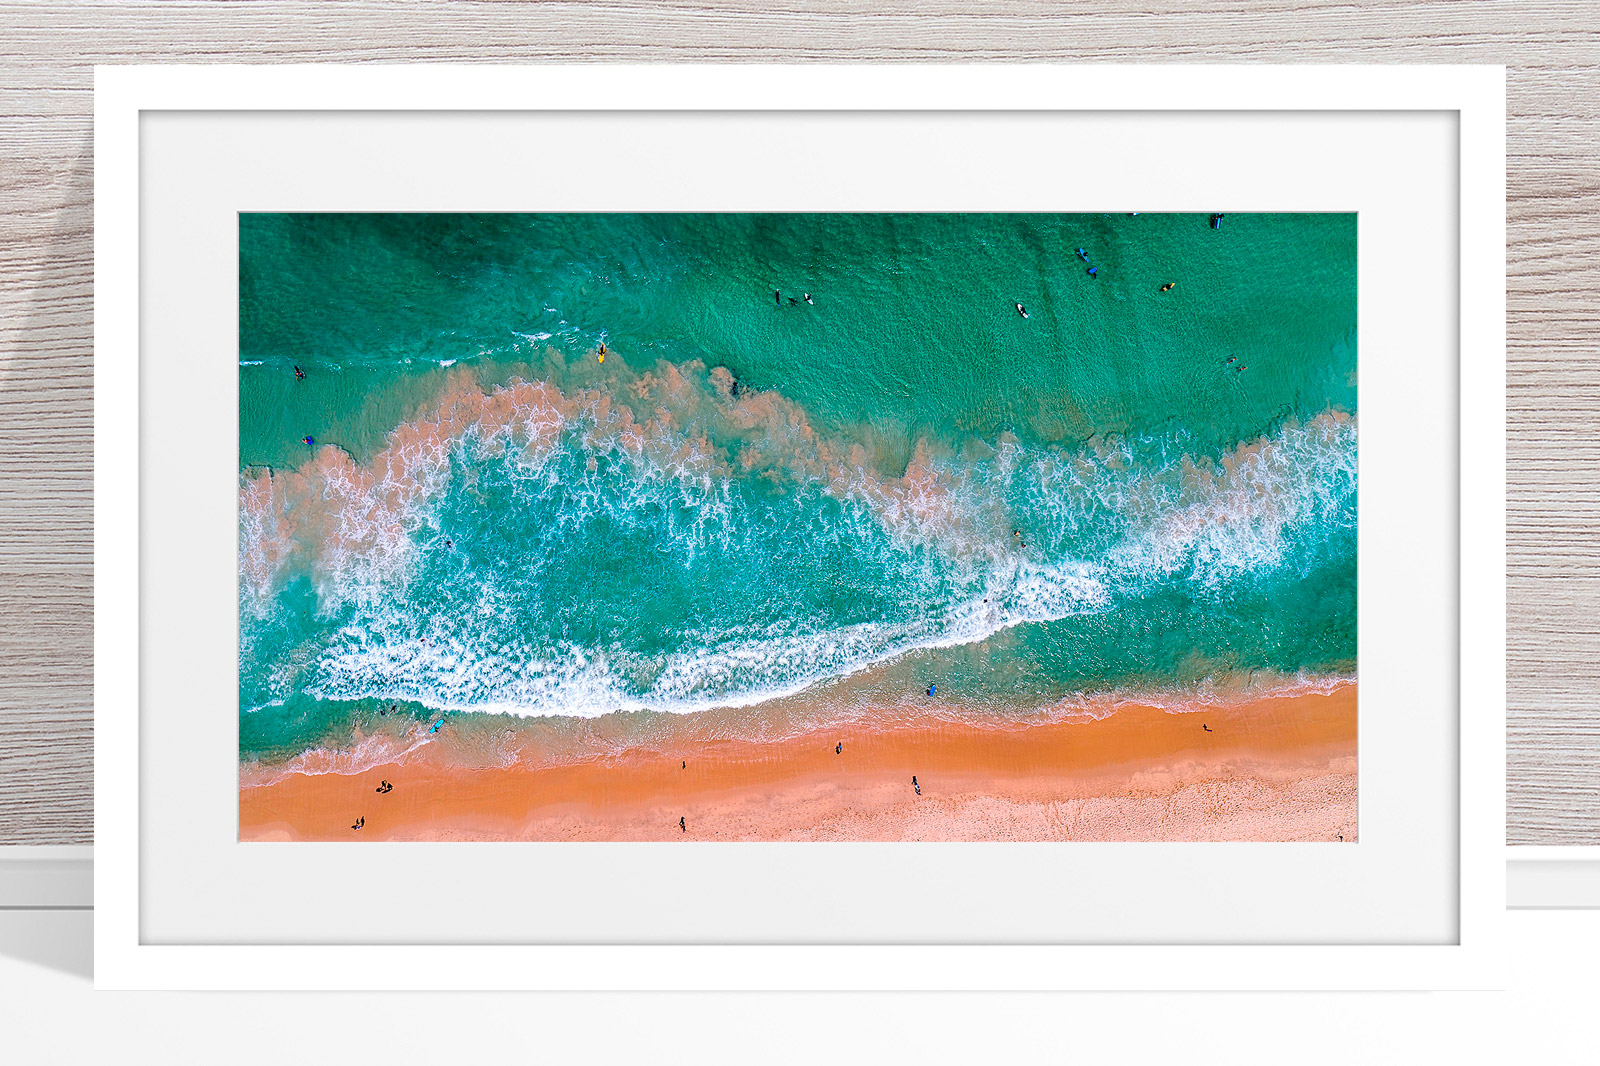 001 - Jason Mazur - 'Scarborough Beach Aerial' White Frame